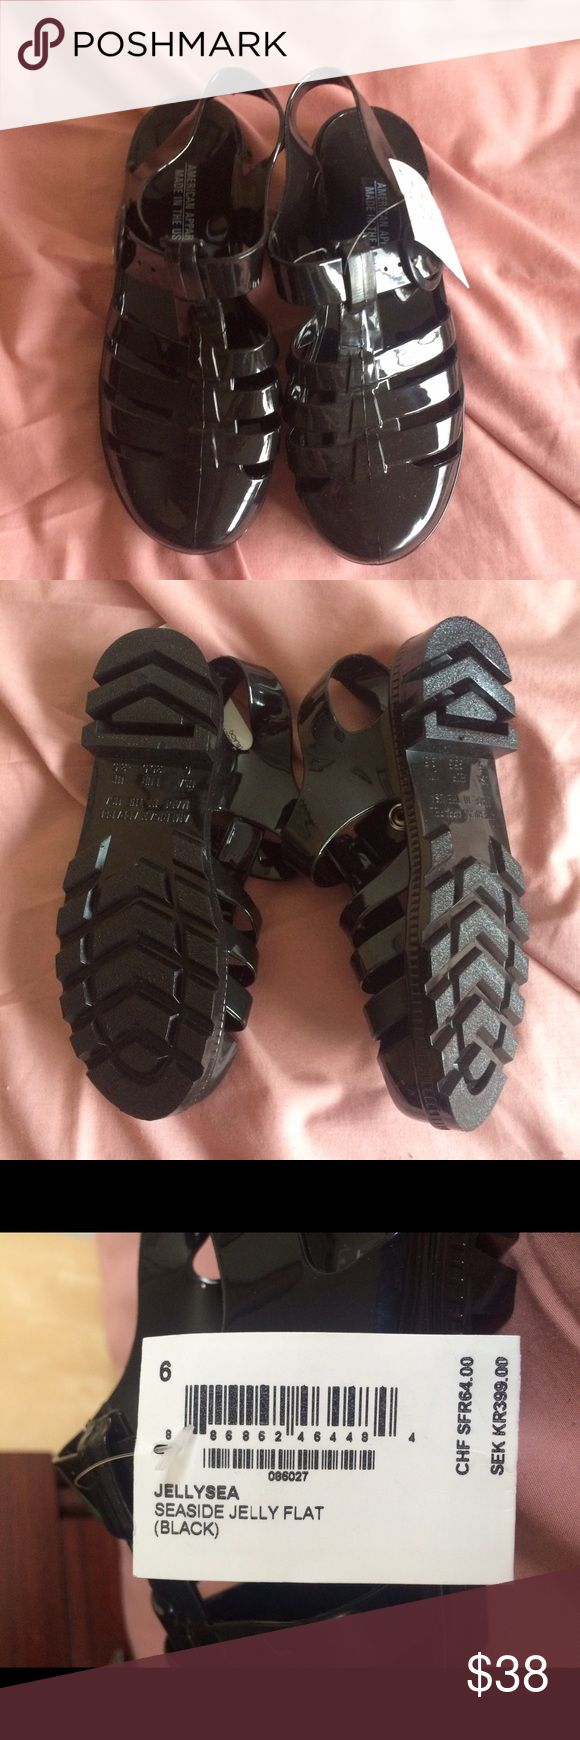 Black jelly sandals american apparel -  No Swaps Nwt Black Jelly Shoes Size 6 Brand New Never Worn